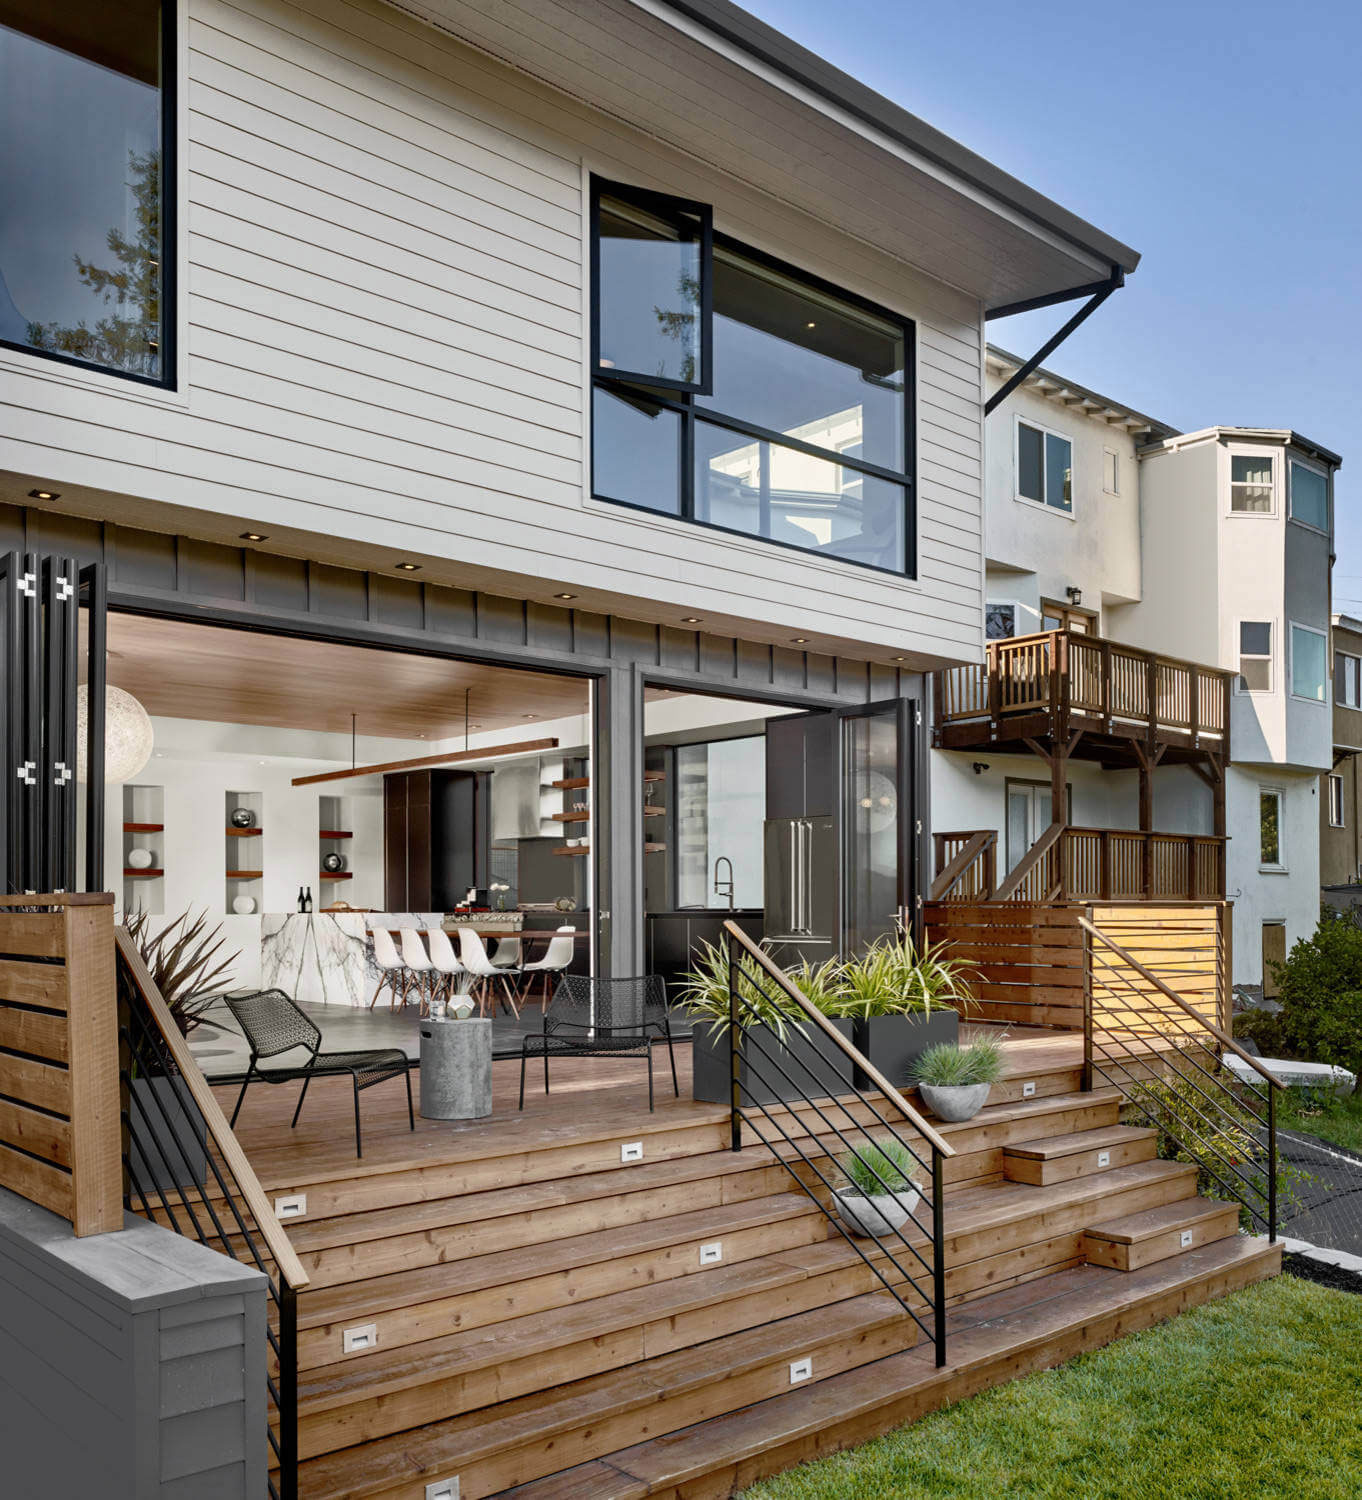 Knock Architecture and Design Creates a Home in the Trestle Glen Neighborhood of Oakland, California